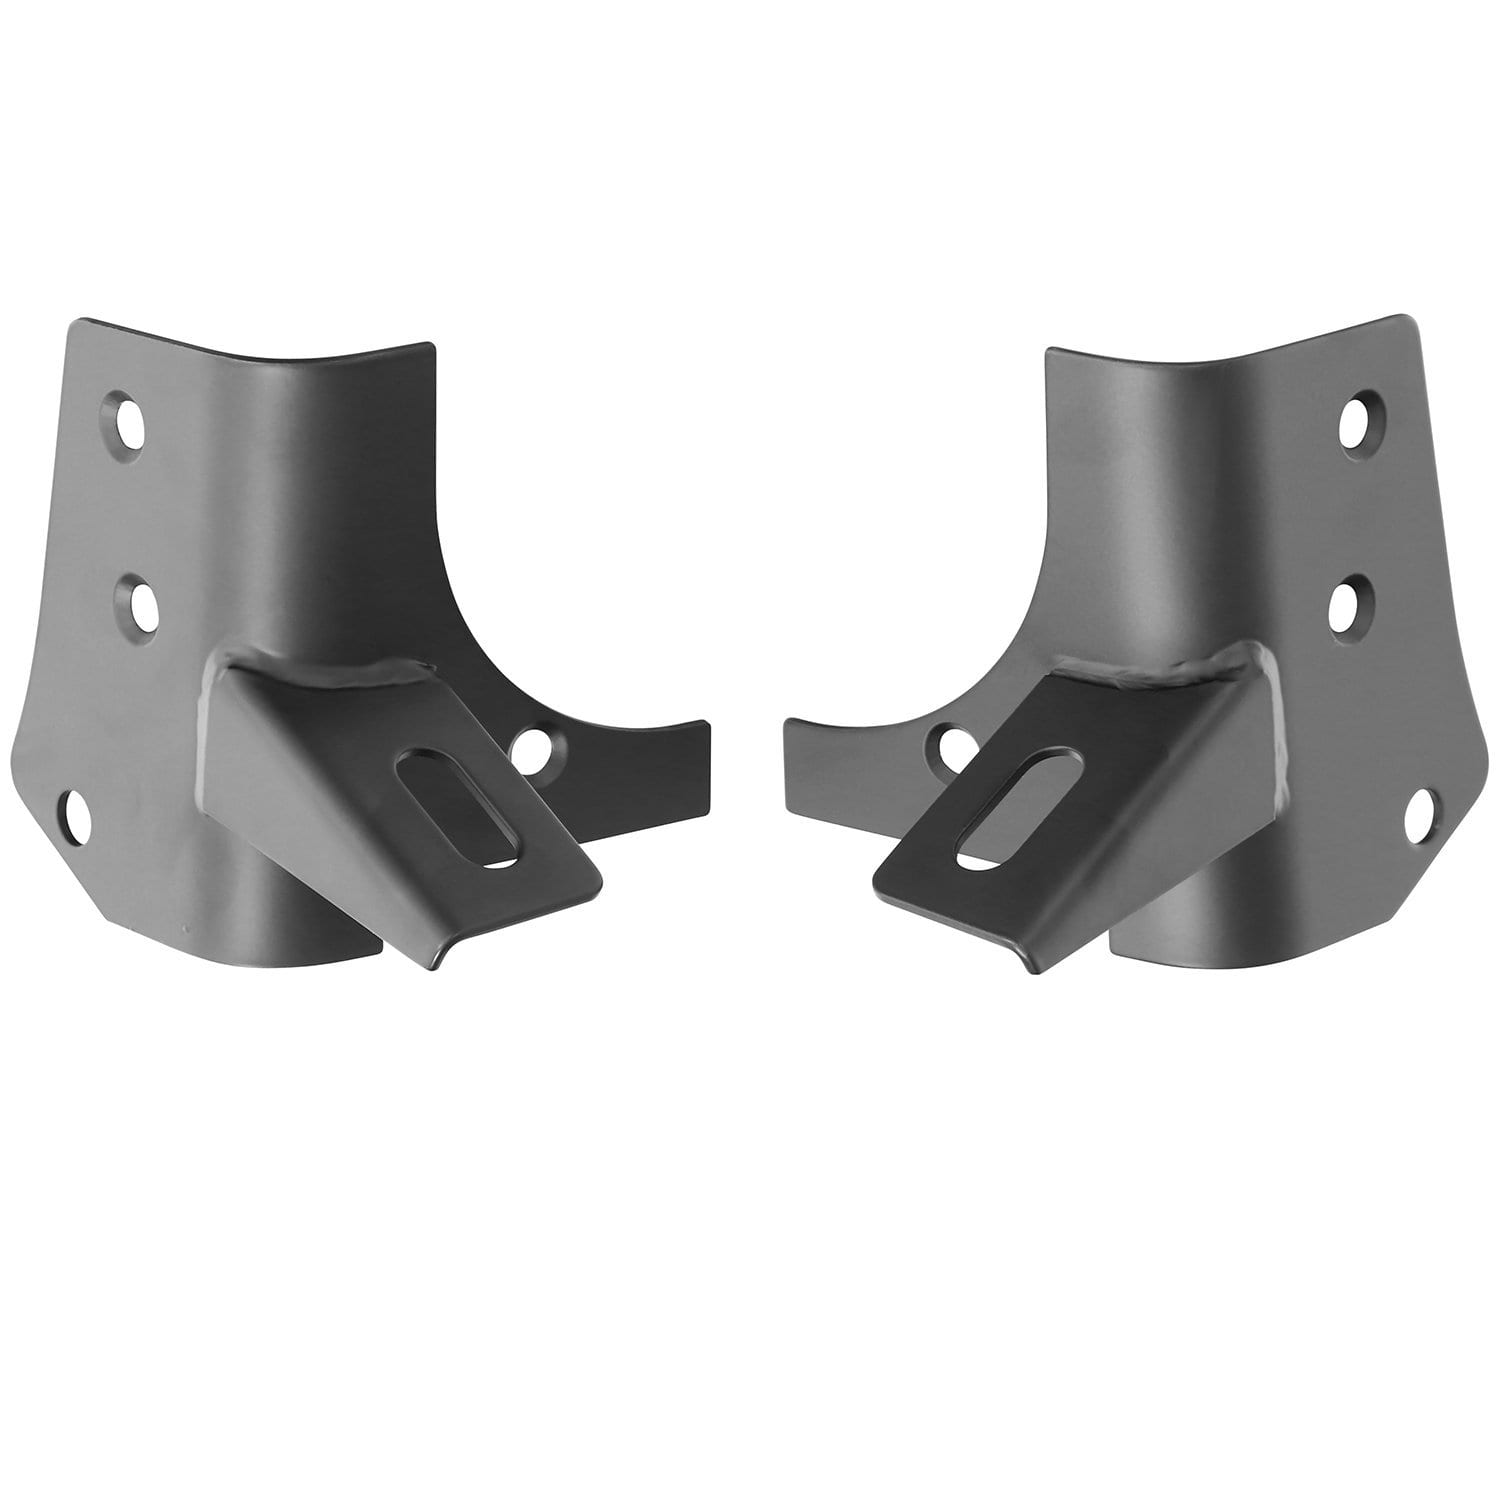 Smittybilt 7608 Windshield Hinge Light Bracket for Jeep TJ// LJ Pair